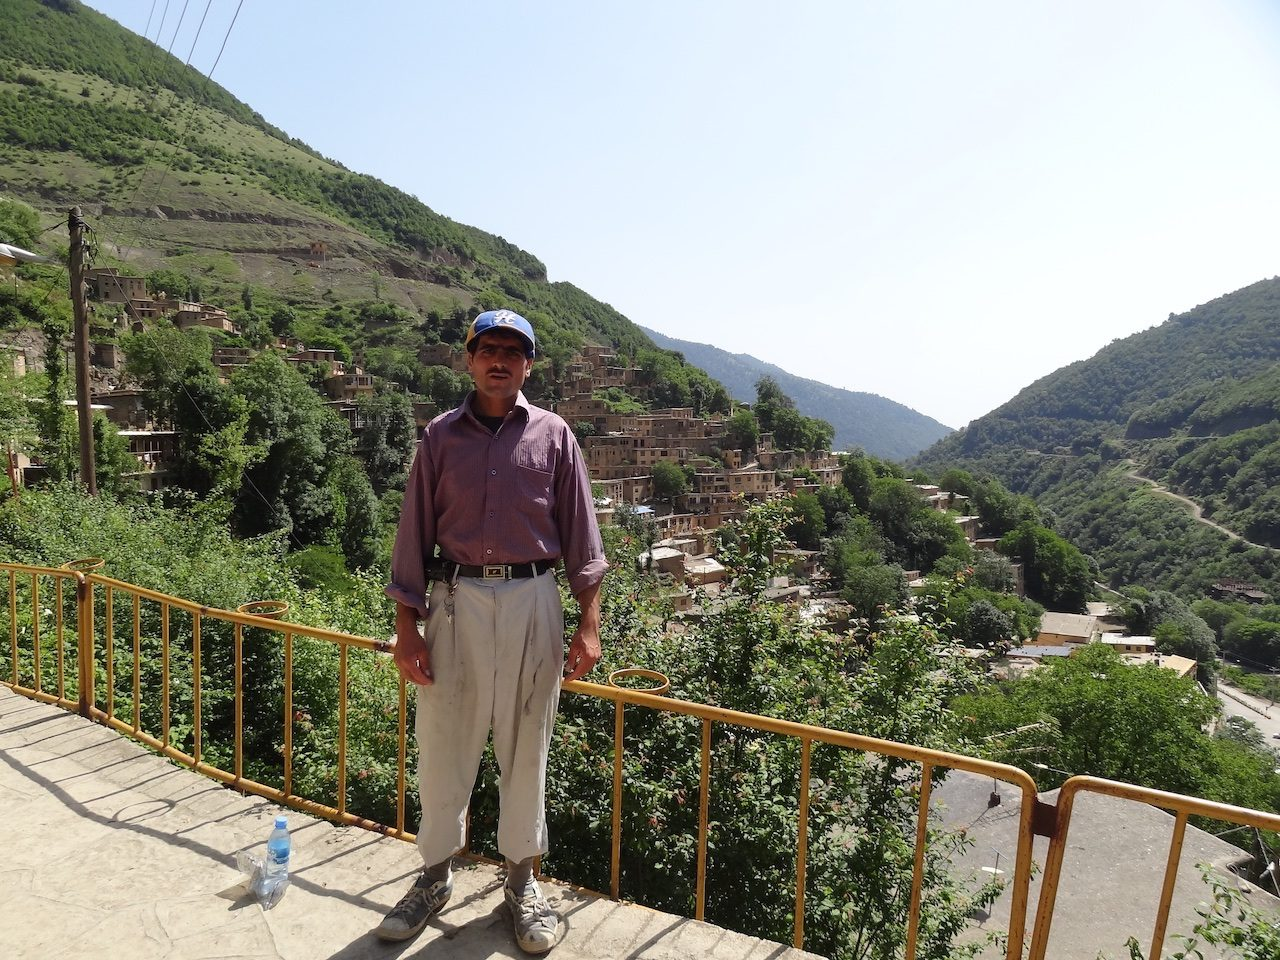 A local in Masuleh from above the town